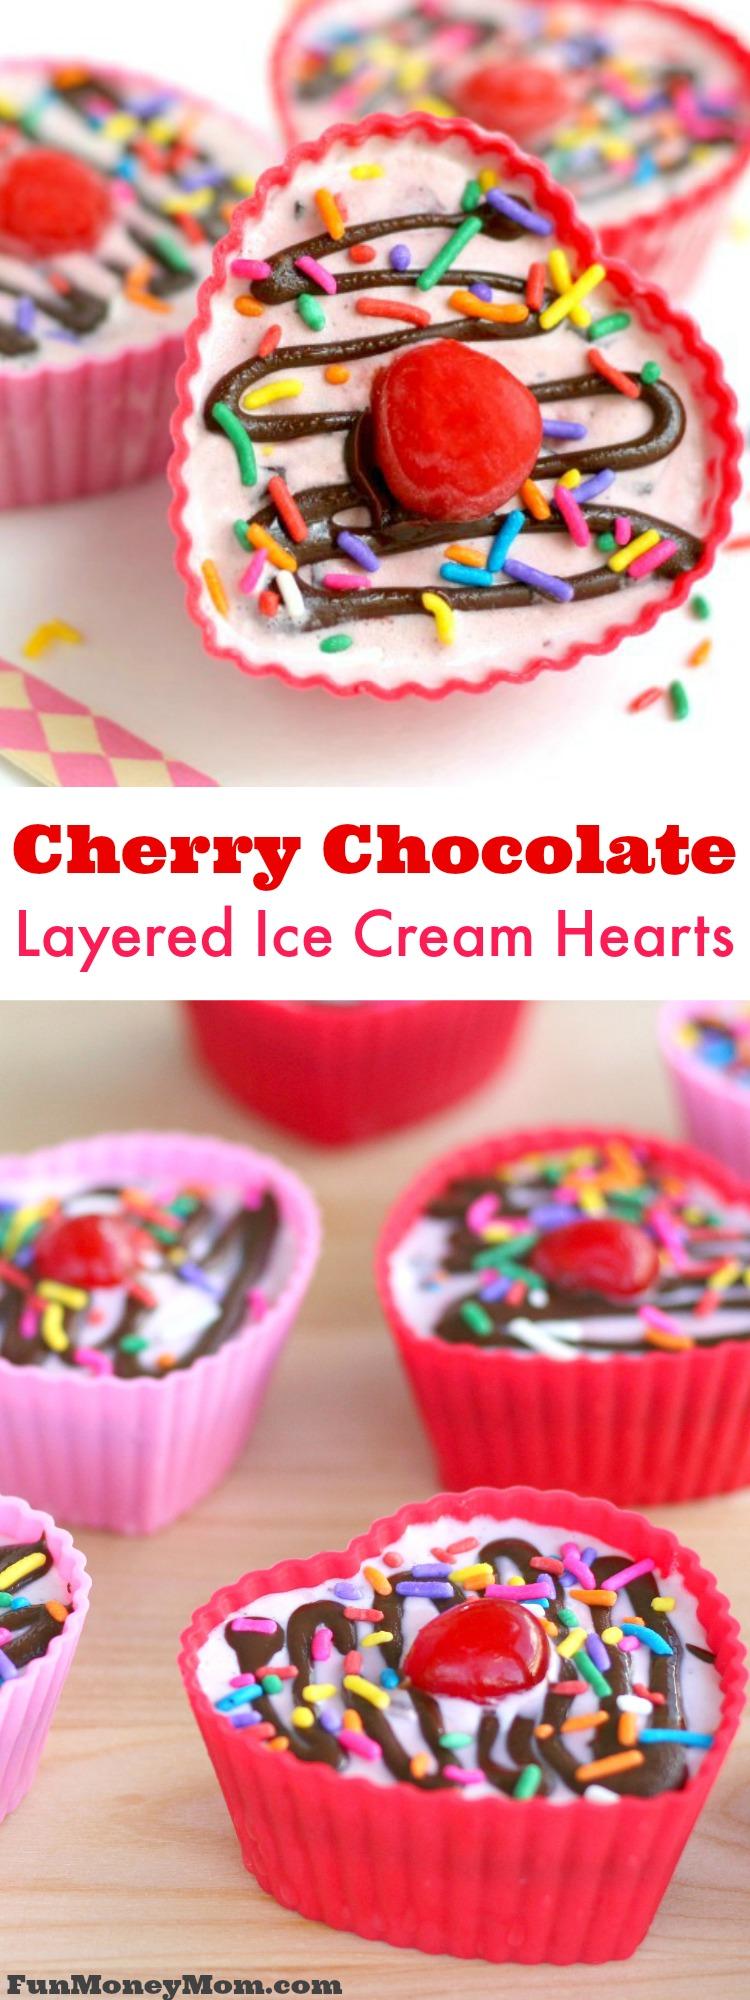 Cool off this summer with an awesome ice cream treat! These cherry chocolate layered ice cream hearts will be your new favorite dessert! #ad